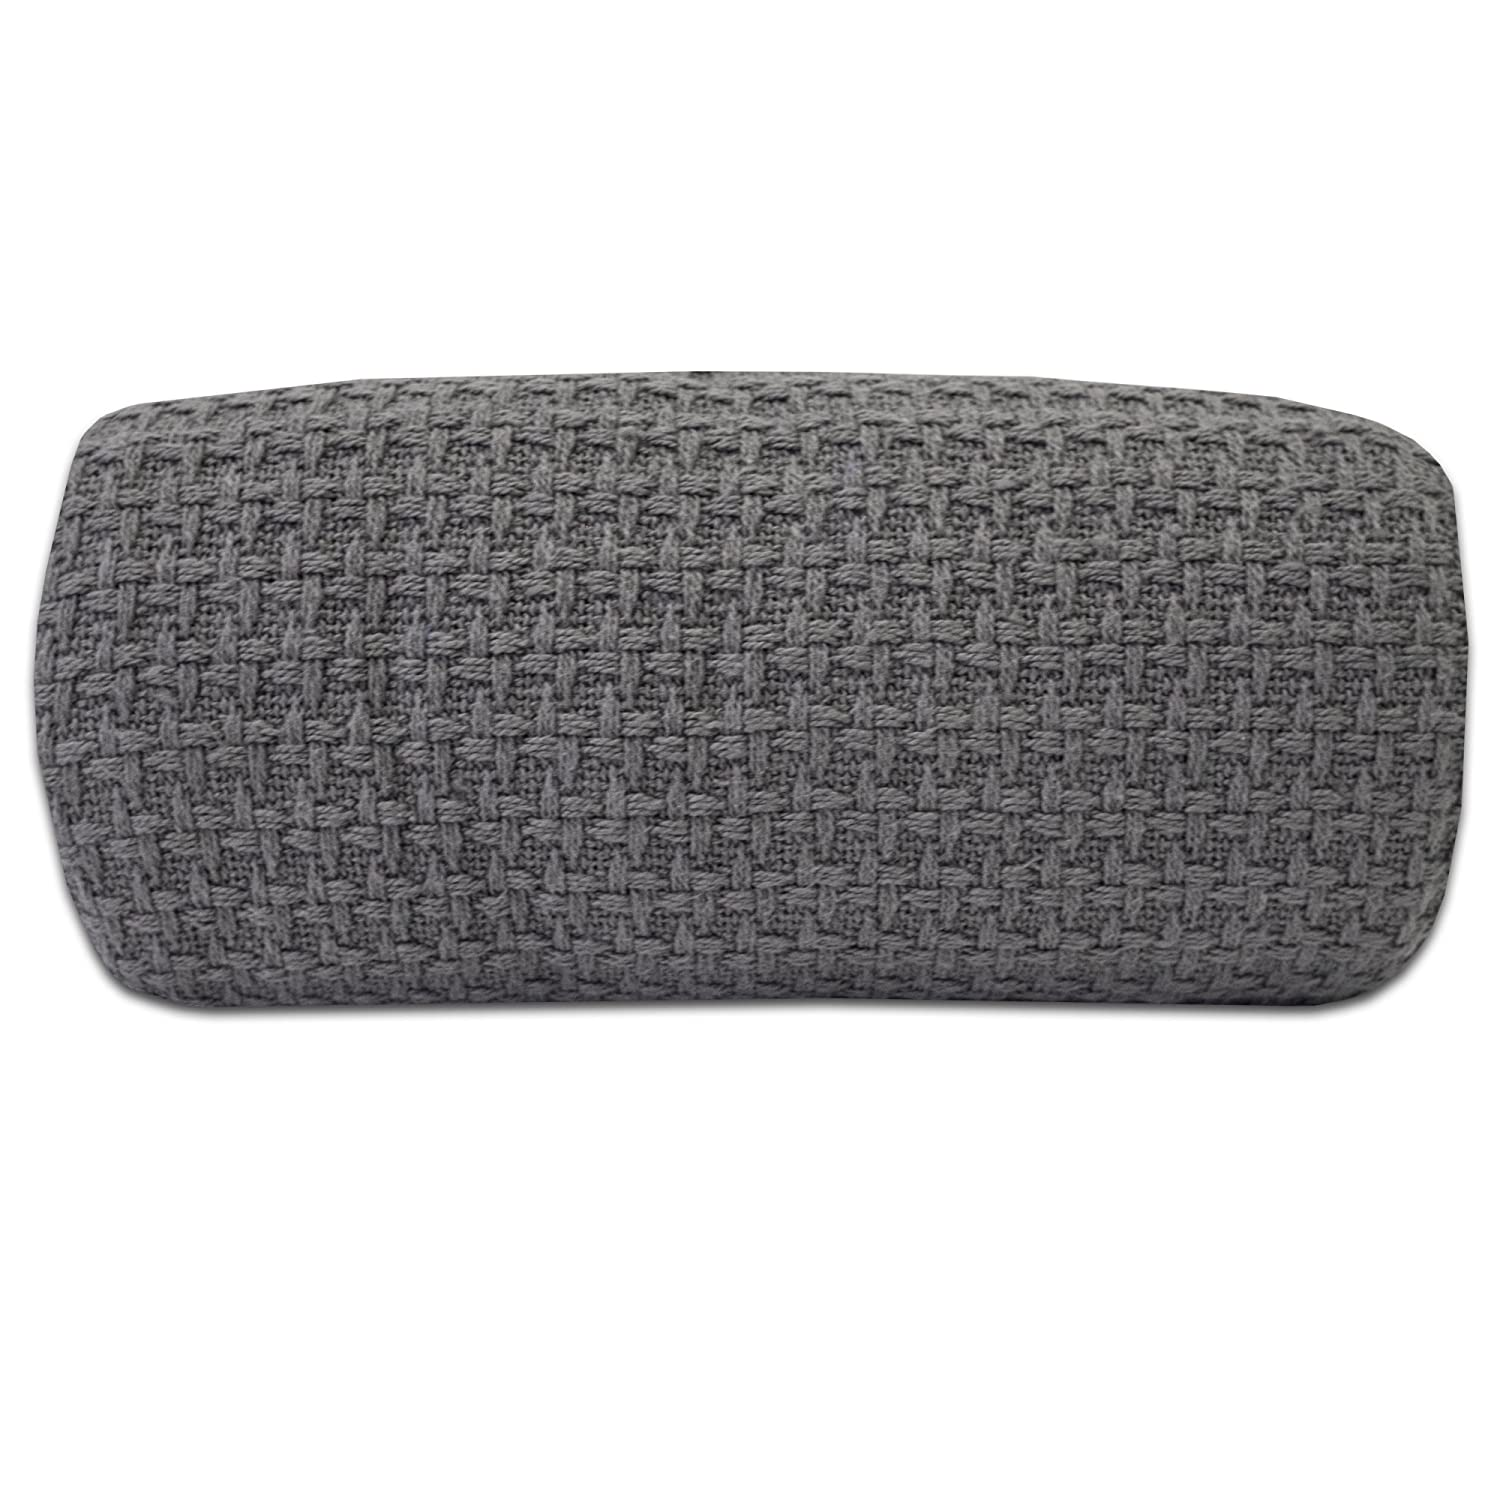 100% Fine Cotton Luxurious Basket Weave Blanket, Dark Gray